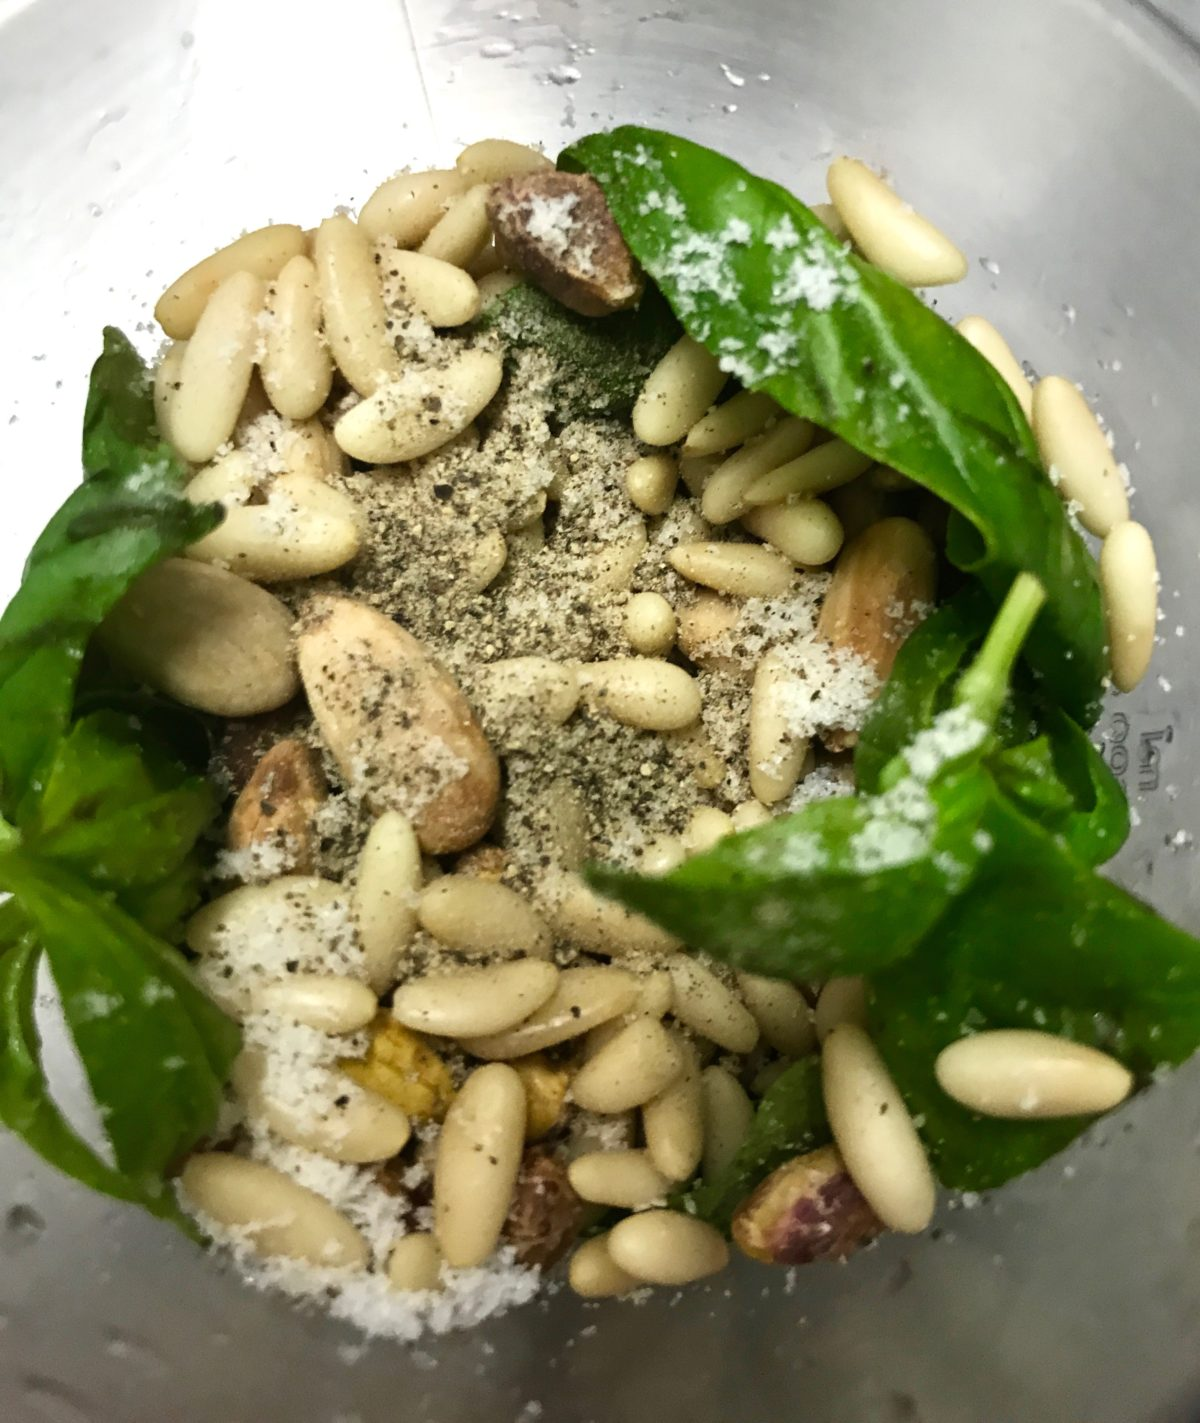 Making pesto with almonds, pine nuts and basil leaves annasfoodstories